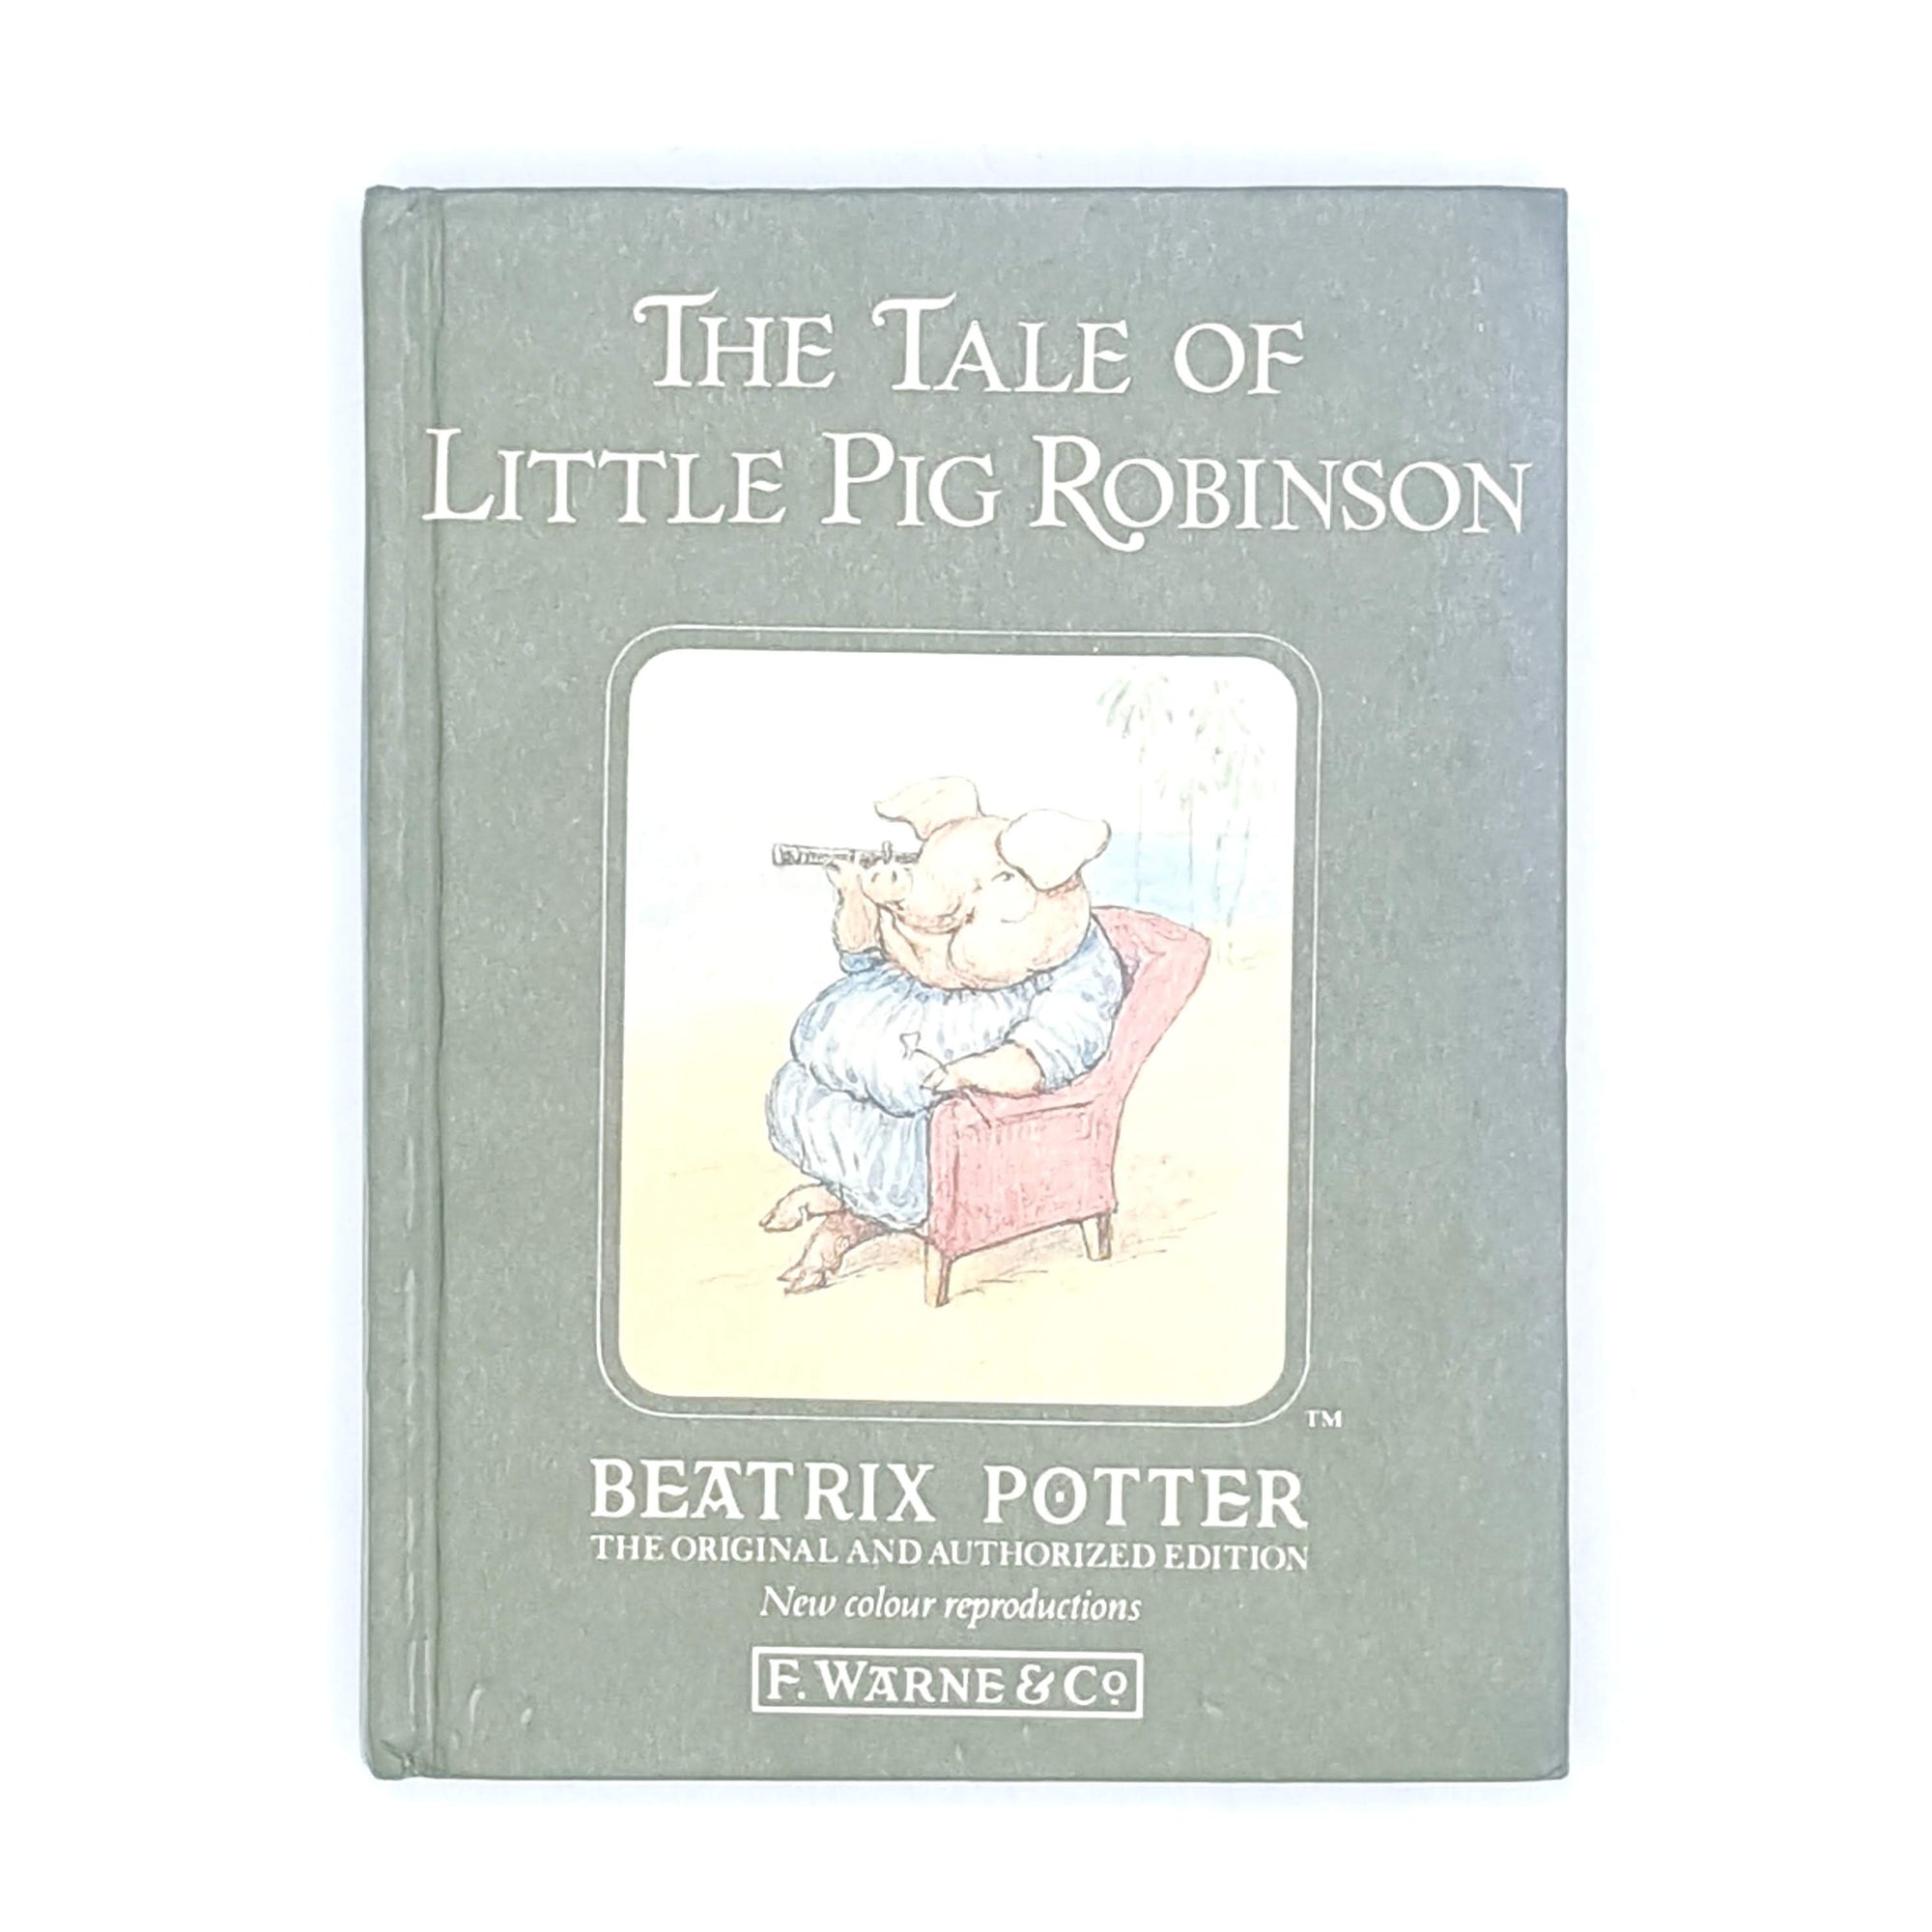 little-pig-robinson-country-house-library-vintage-books-beatrix-potter-patterned-old-decorative-thrift-classic-green-antique-childrens-